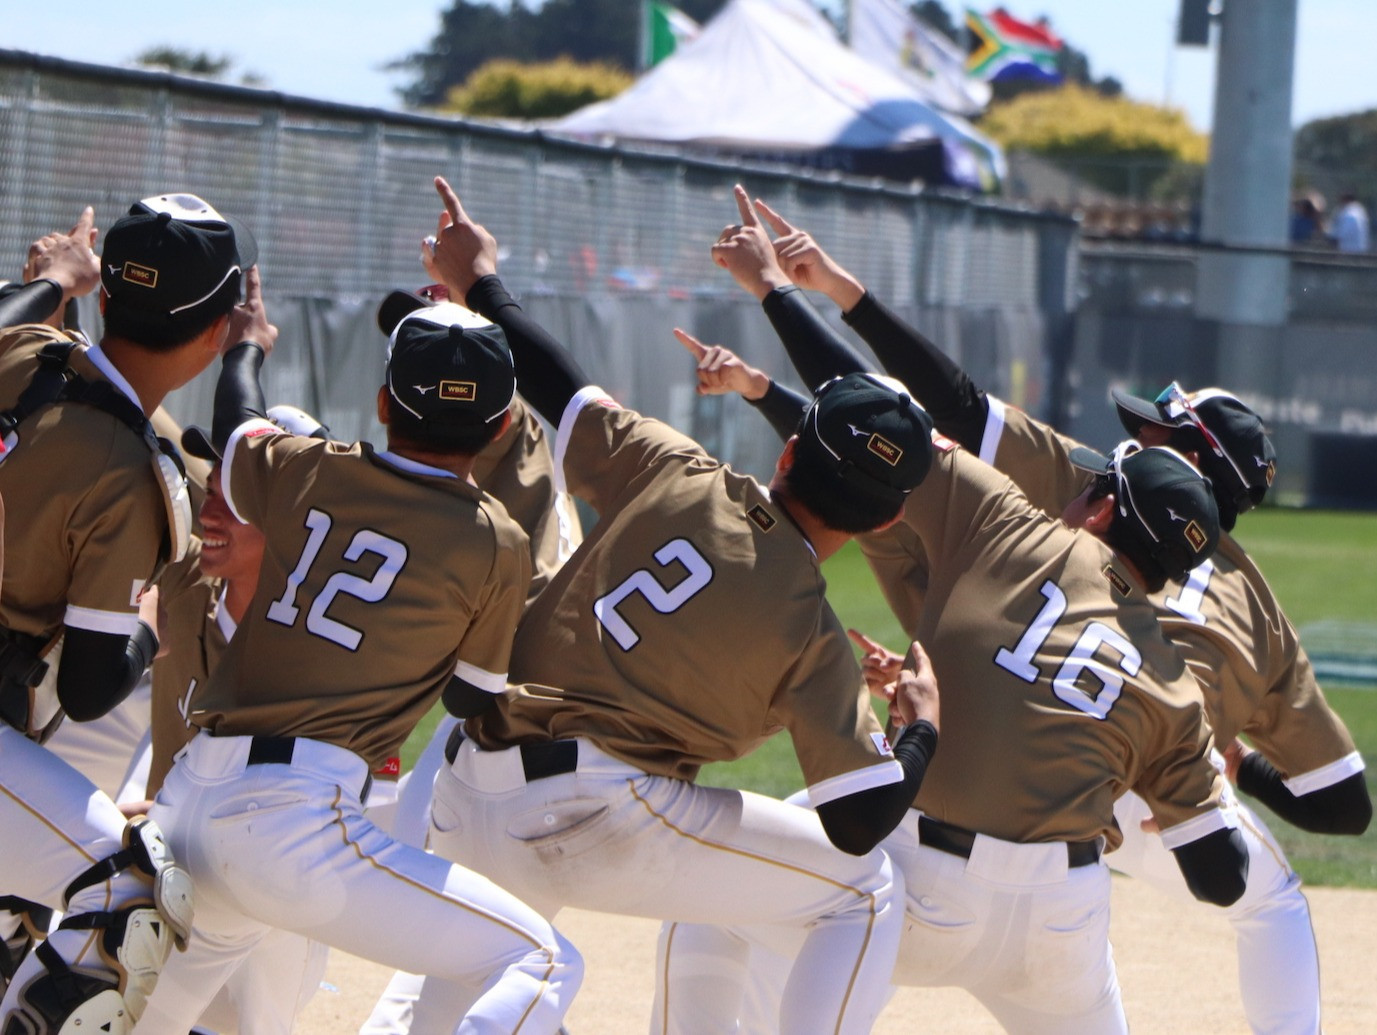 Australia and Japan remain in-form as super round begins at WBSC Under-18 Men's Softball World Cup